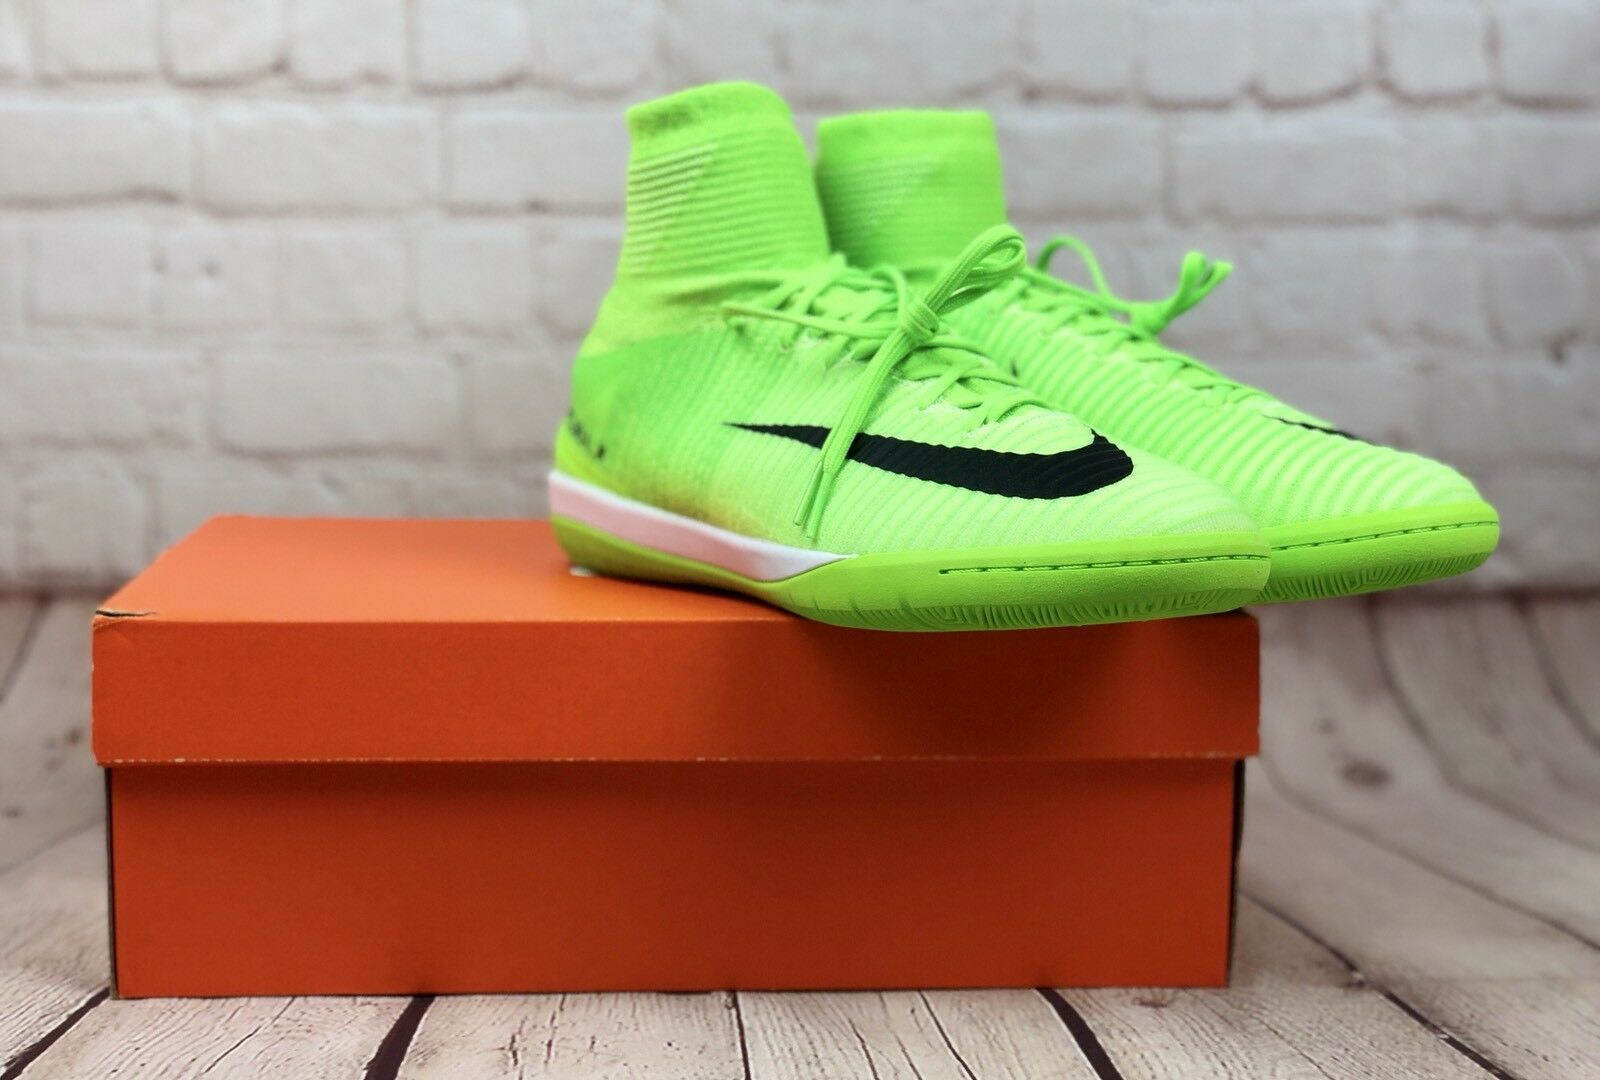 nike nike nike soccer intérieur mercurialx proximo ii df ic chaussures taille 10 831976-305 hommes 834c82